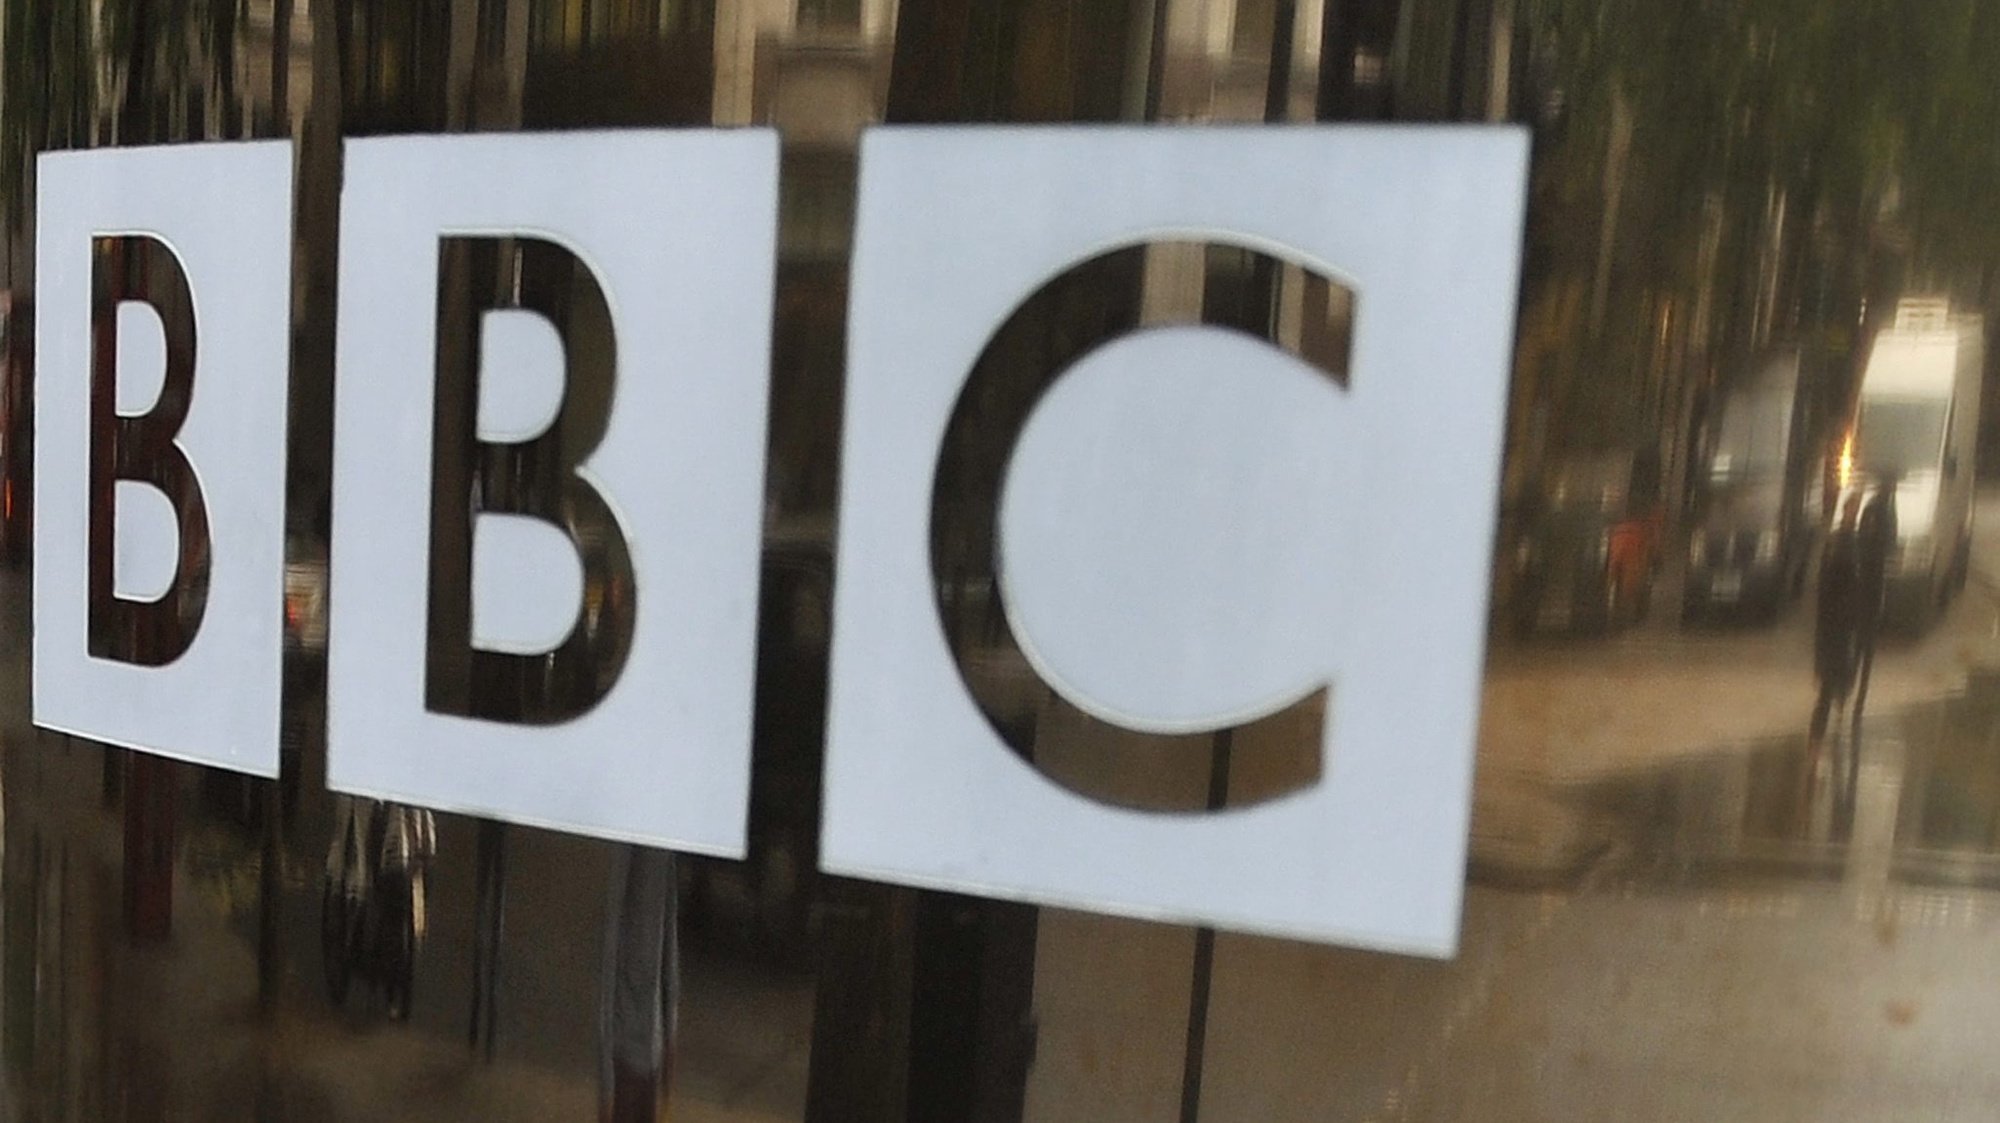 epa03425893 (FILES) A file photo showing the BBC's well known logo on the glass doors of one of their studios in central London 22 June 2011. The broadcasting corporation's director general George Entwhistle said, in the light of abuse allegations against the late Sir Jimmy Saville, a veteran dj and presenter with BBC,  all 'outstanding questions' would be addressed, but only after ' police had finished everything they have to do'  EPA/ANDY RAIN *** Local Caption *** 02789635